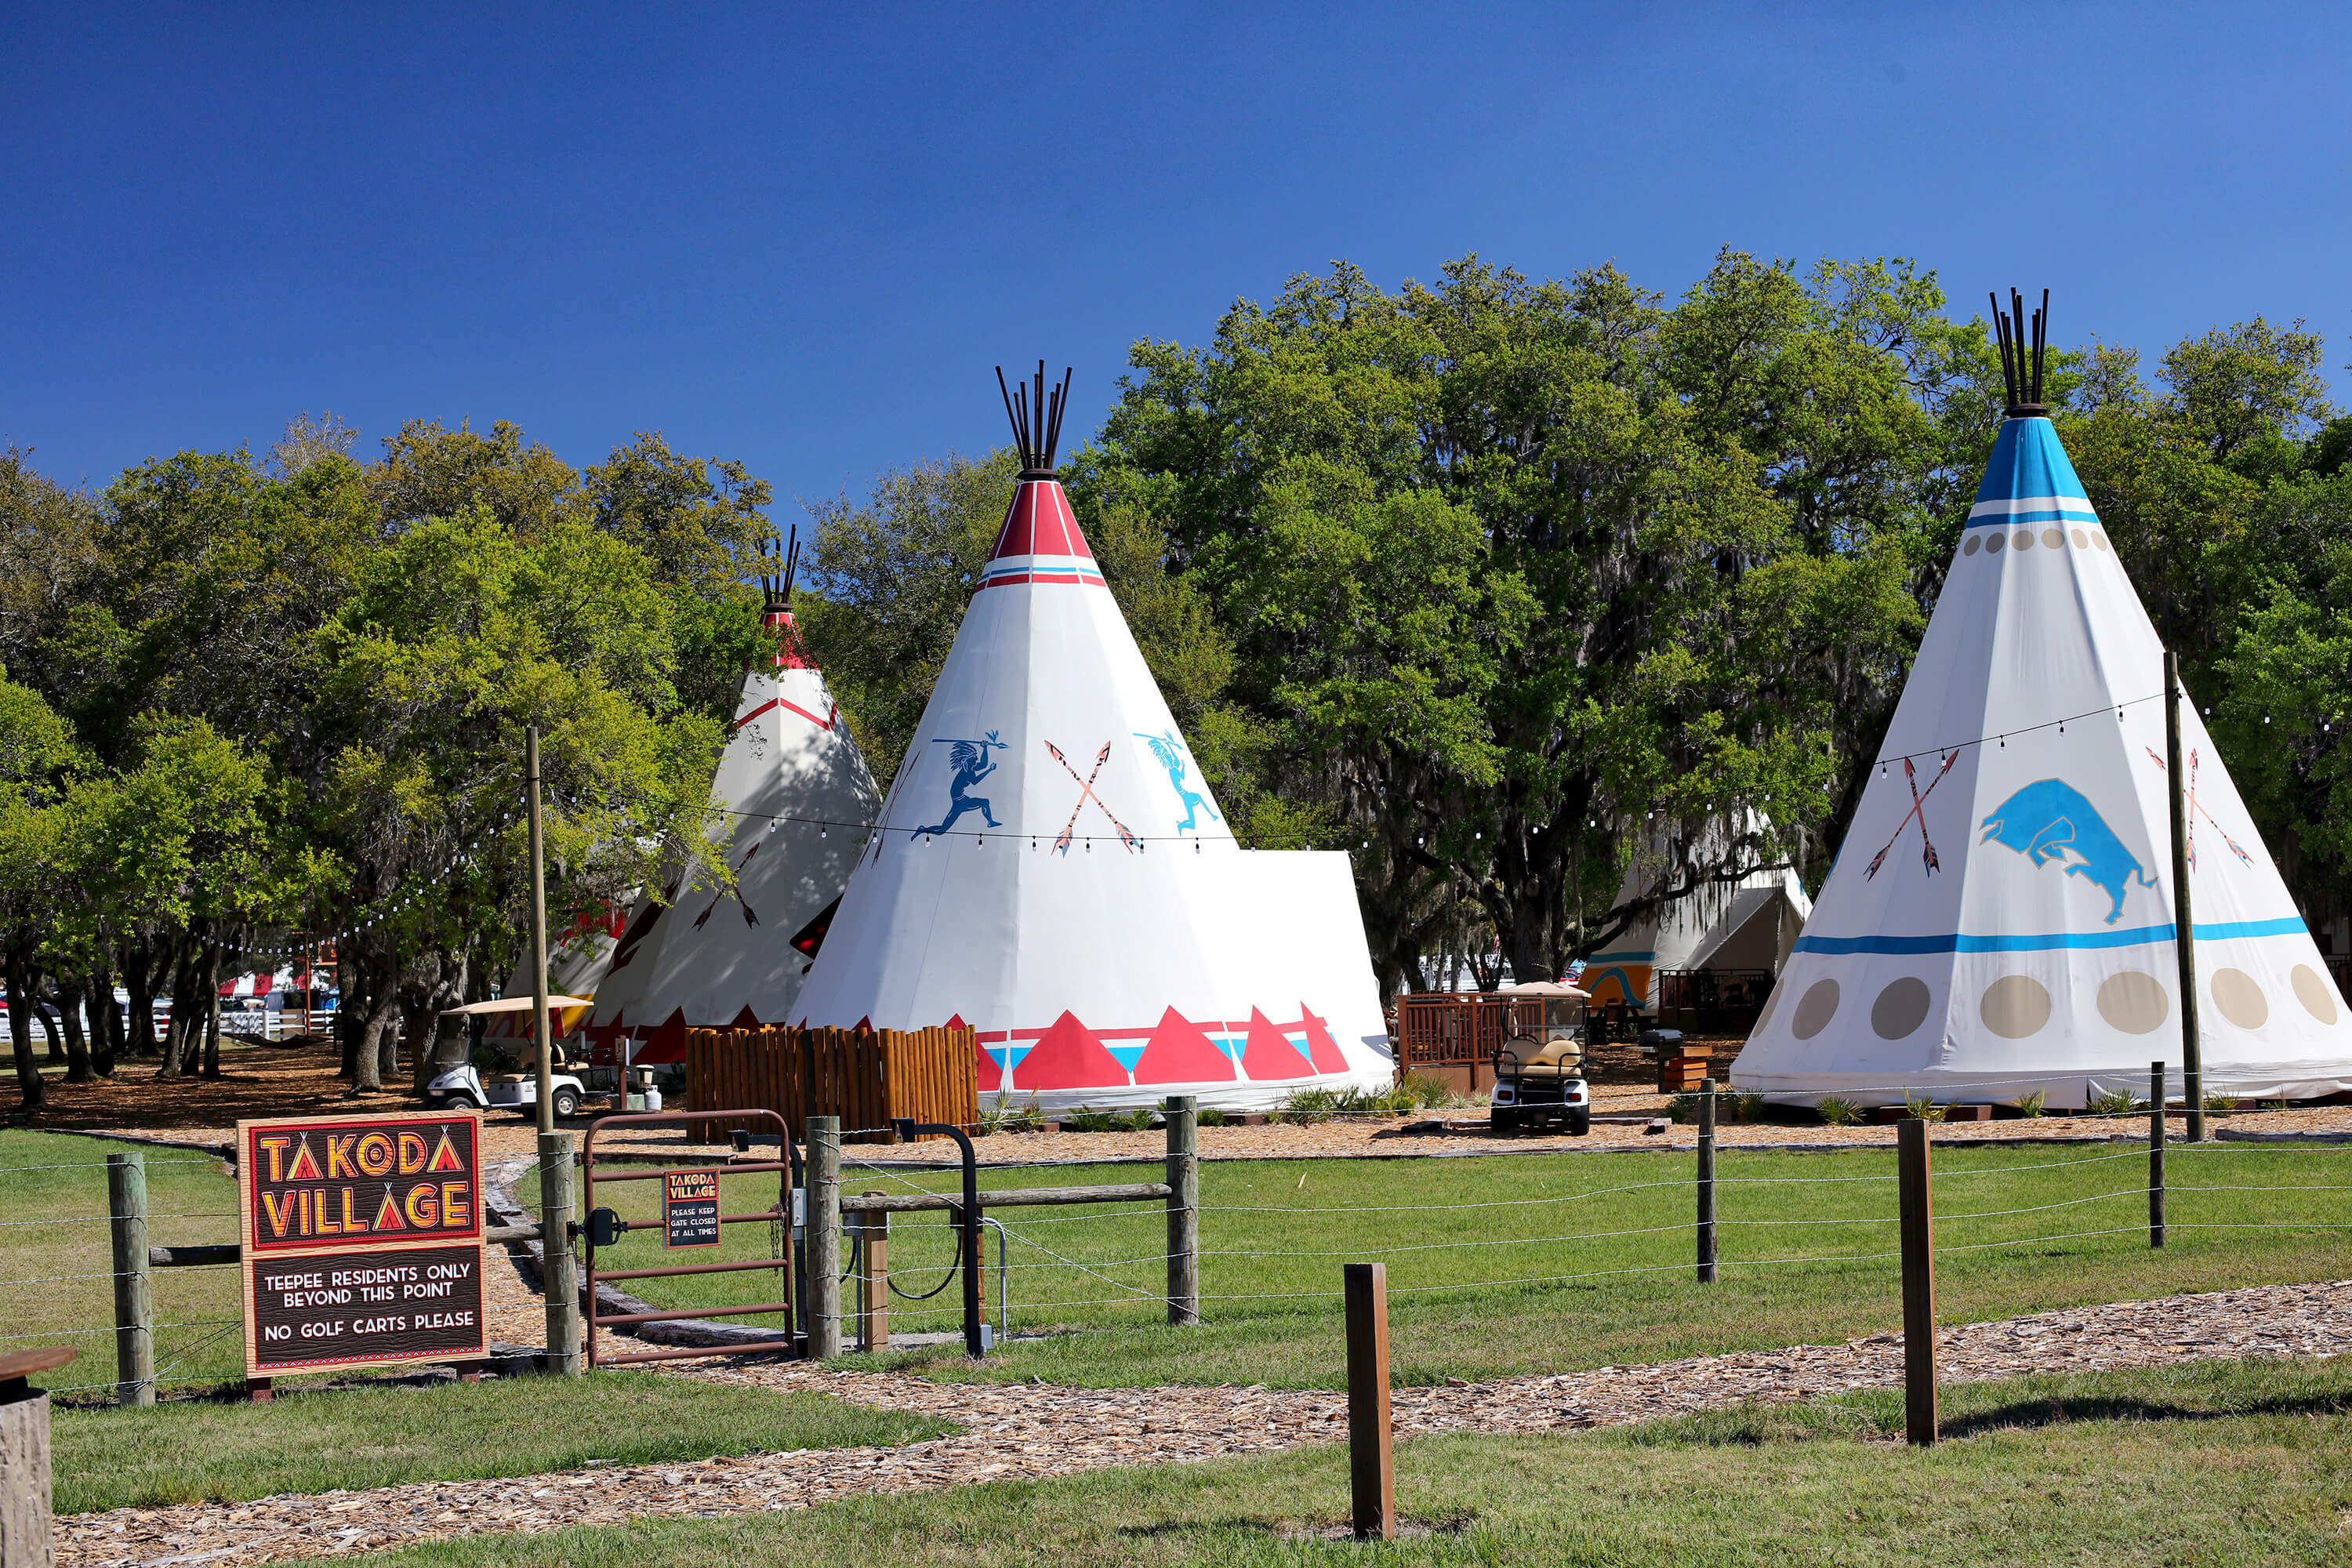 Takoda Village with Luxe Teepees | Westgate River Ranch Resort & Rodeo